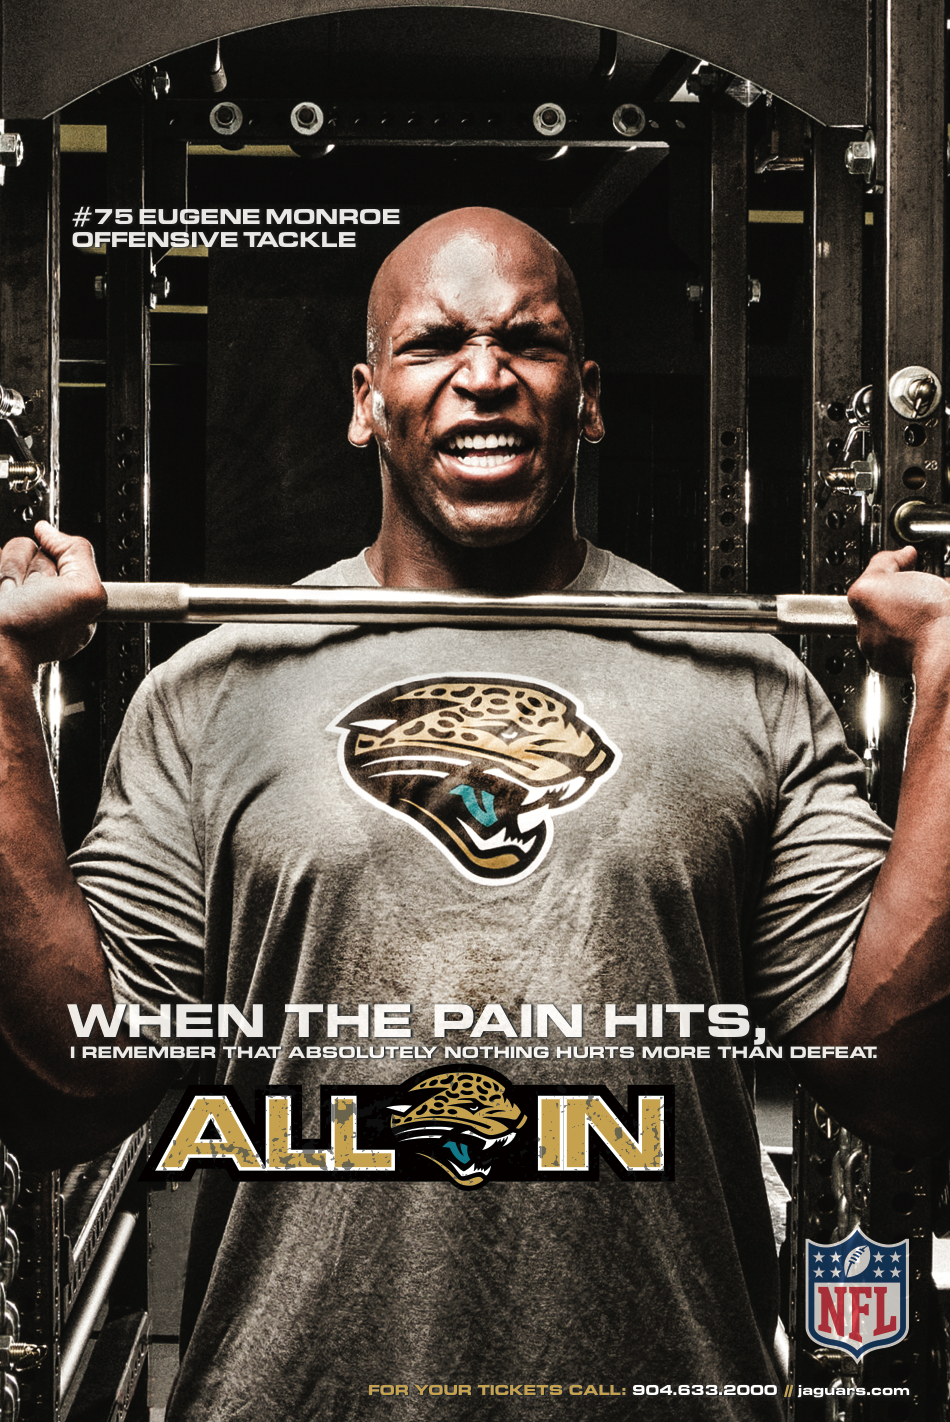 Jaguars: All In - Monroe